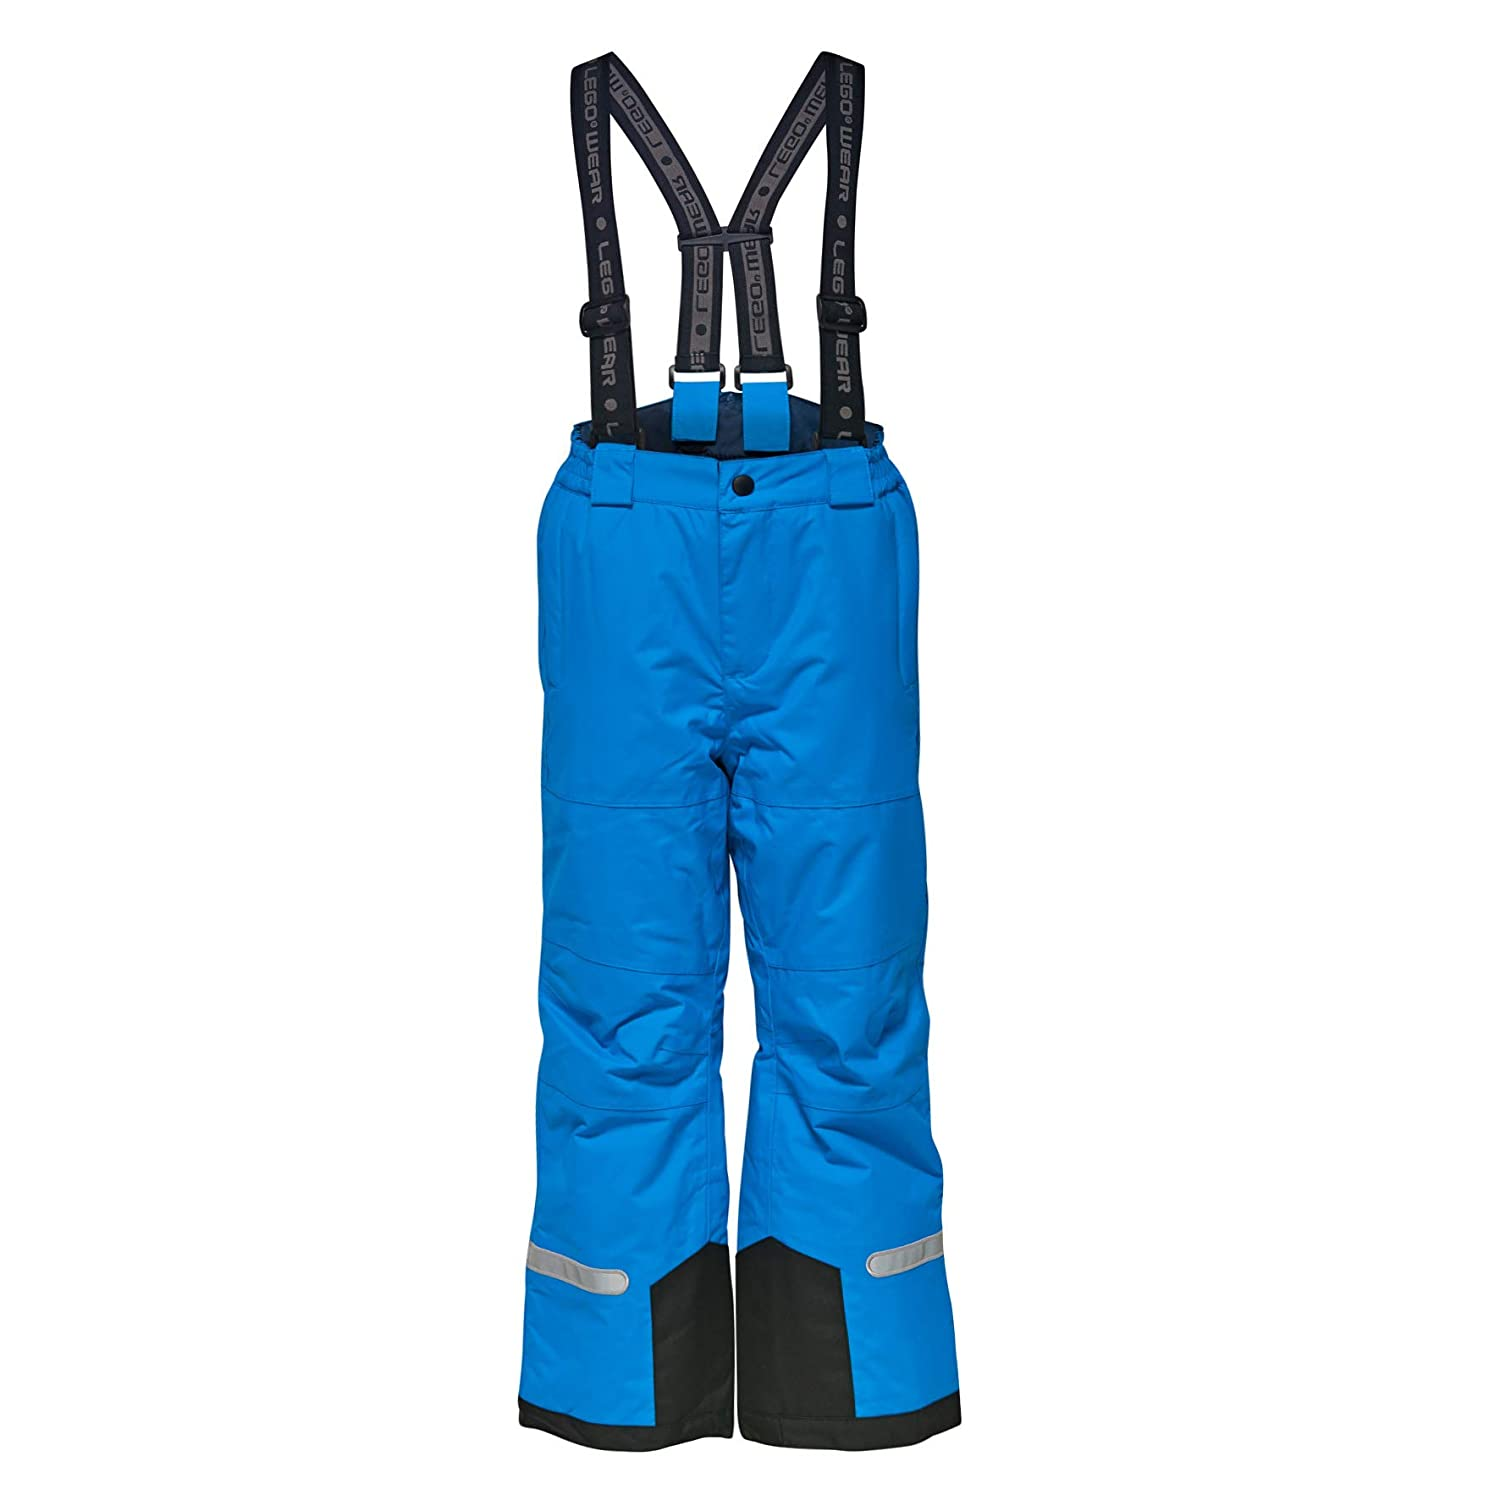 LEGO Wear Kids /& Baby Tec Waterproof /& Windproof Ski /& Snow Pants with Detachable Suspenders